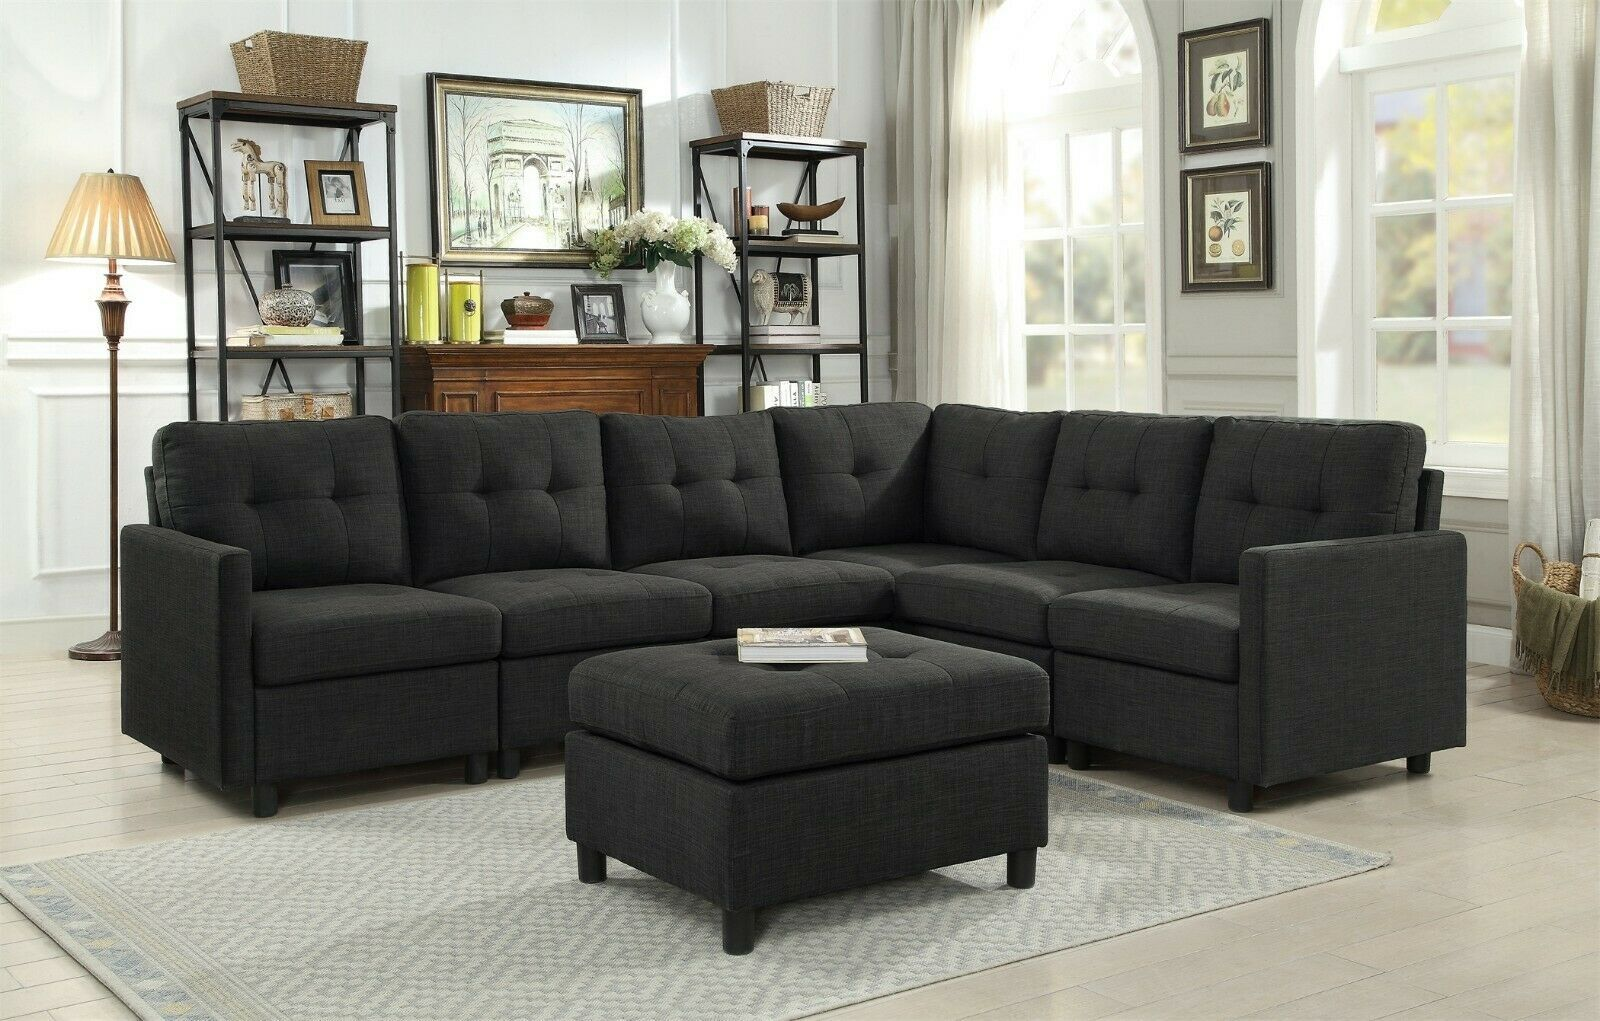 Sectional Sofa Set Modular Piece Furniture Easy To Assemble Charcoal Couch Grey Sofas In 2020 Contemporary Sectional Sofa Modular Sectional Sofa Grey Sectional Sofa